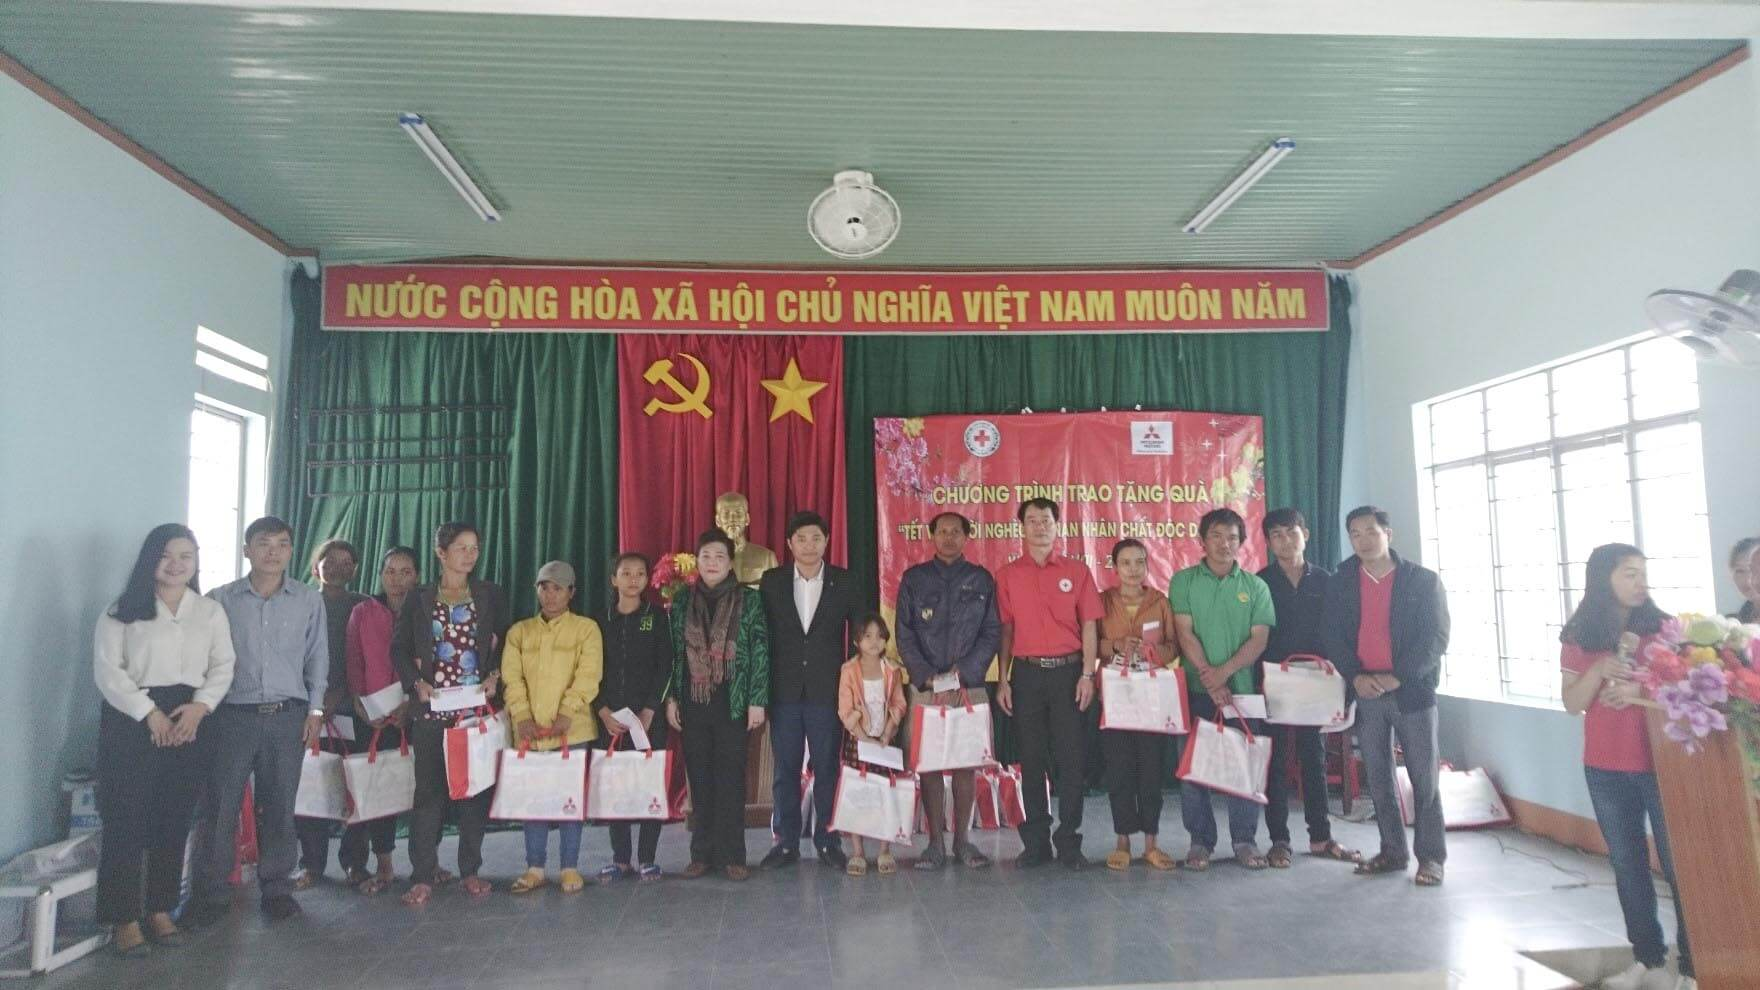 MMV representative and Mitsubishi Dealer gave gifts in Gia Lai province